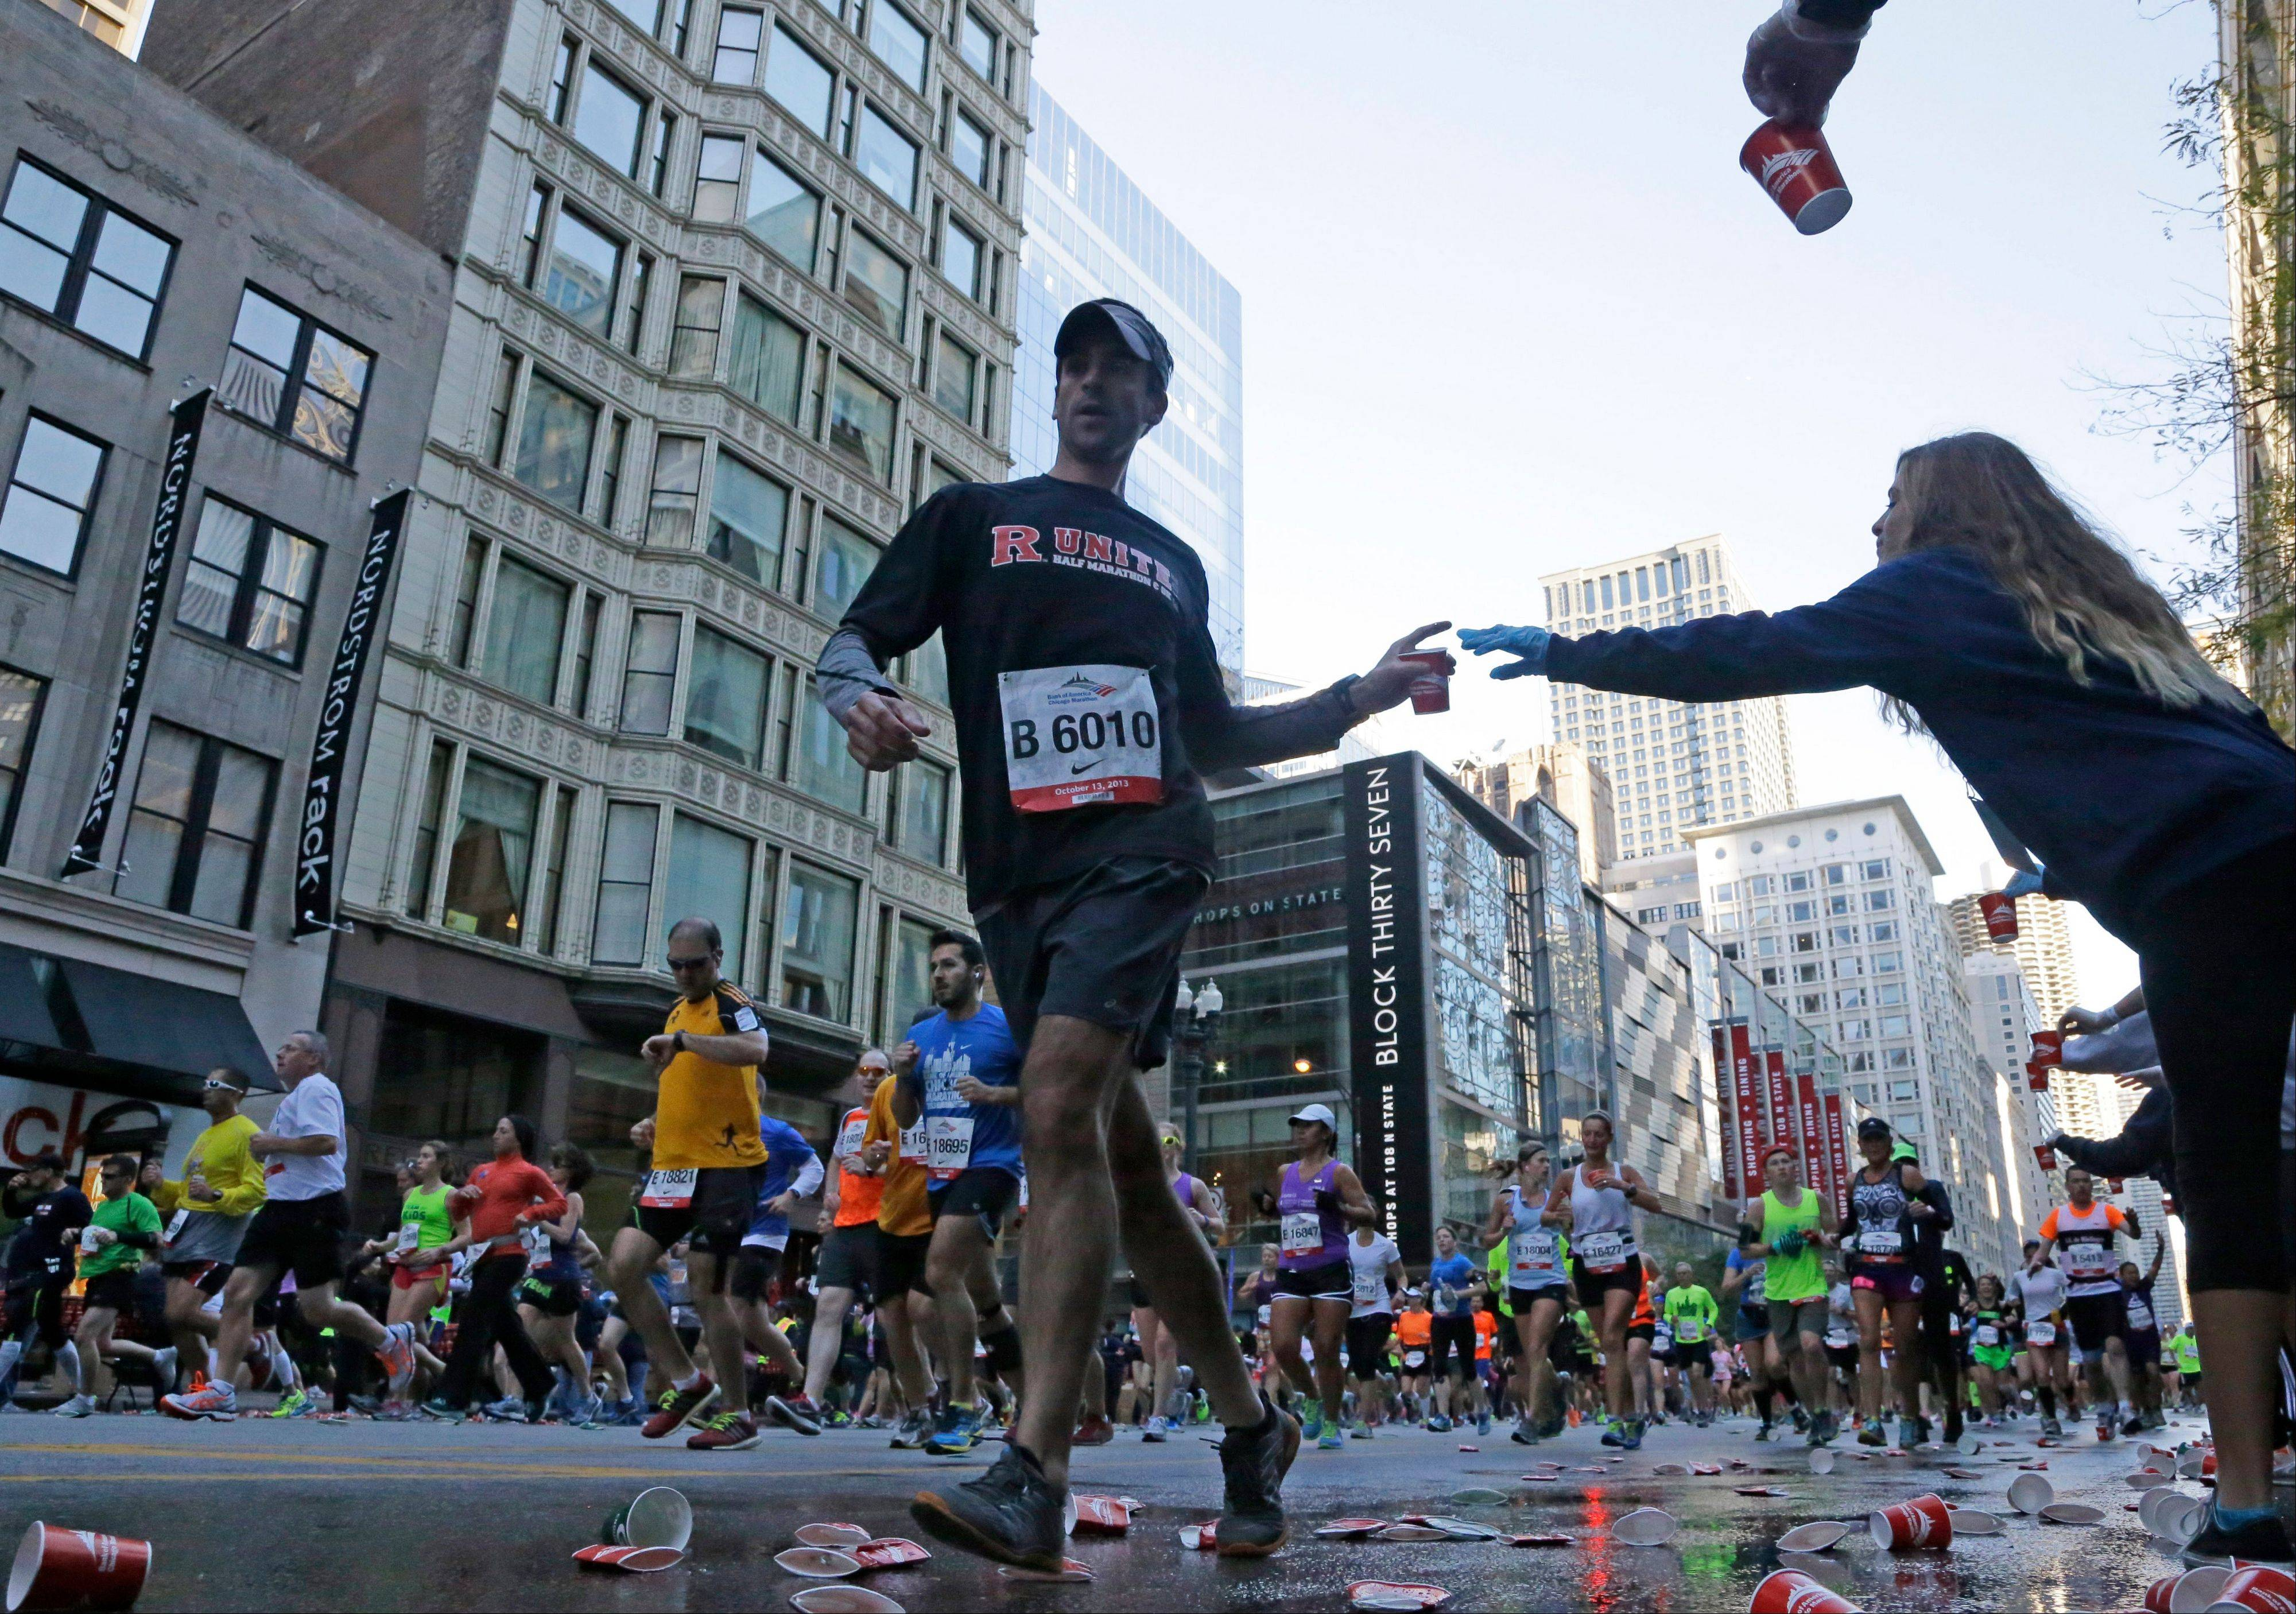 Runners grab water at an aid station during the annual Chicago Marathon in Chicago, Sunday, Oct. 13, 2013.